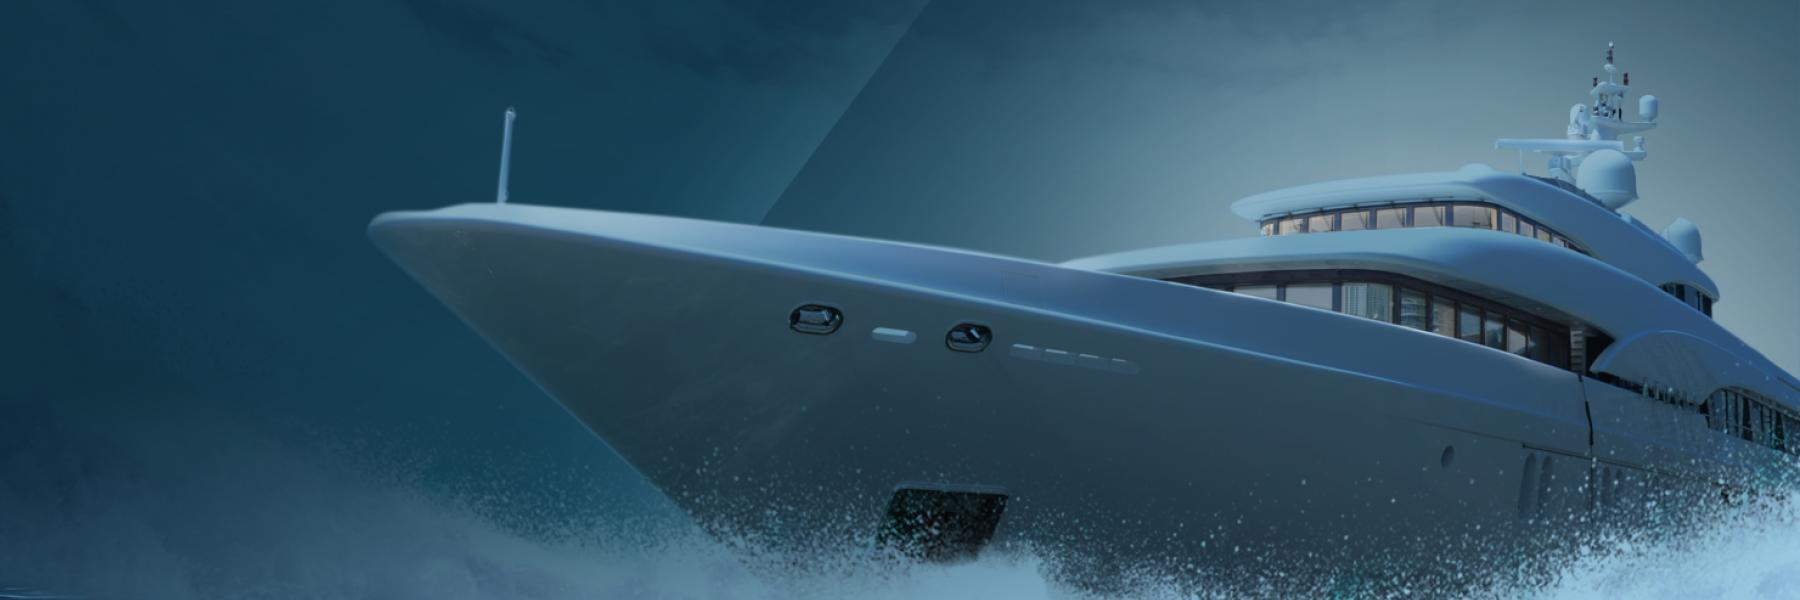 An image of a Super Yacht